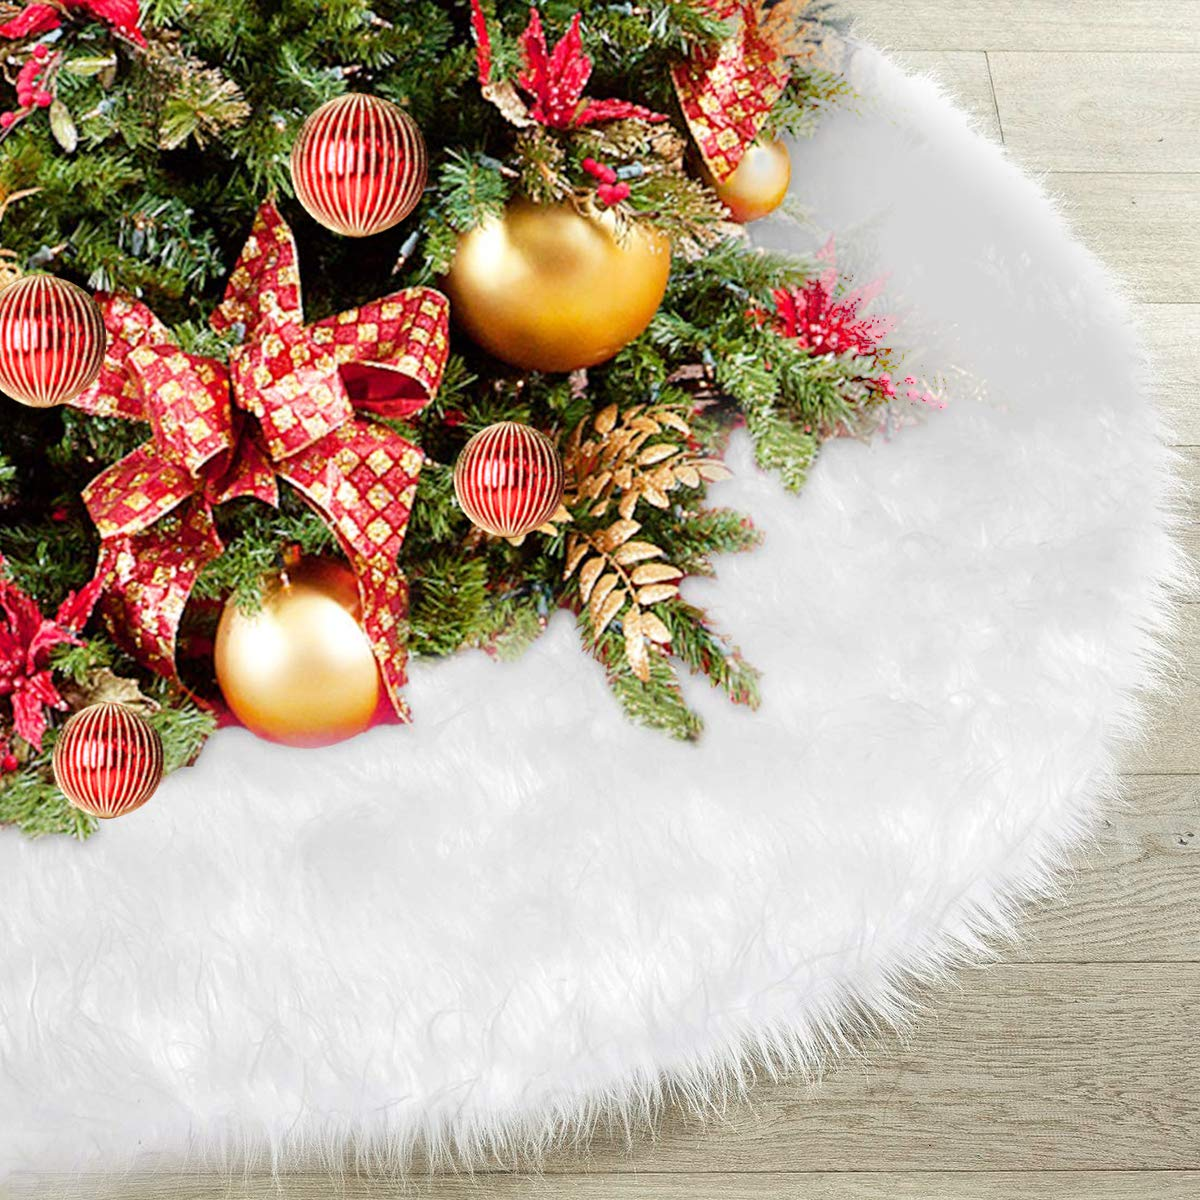 Faux Fur Christmas Tree Skirt 48 inch, Elegant White Xmas Decorations for Festive Holiday Home Party Happy New Year Ornaments, Accessory for Floor Protection